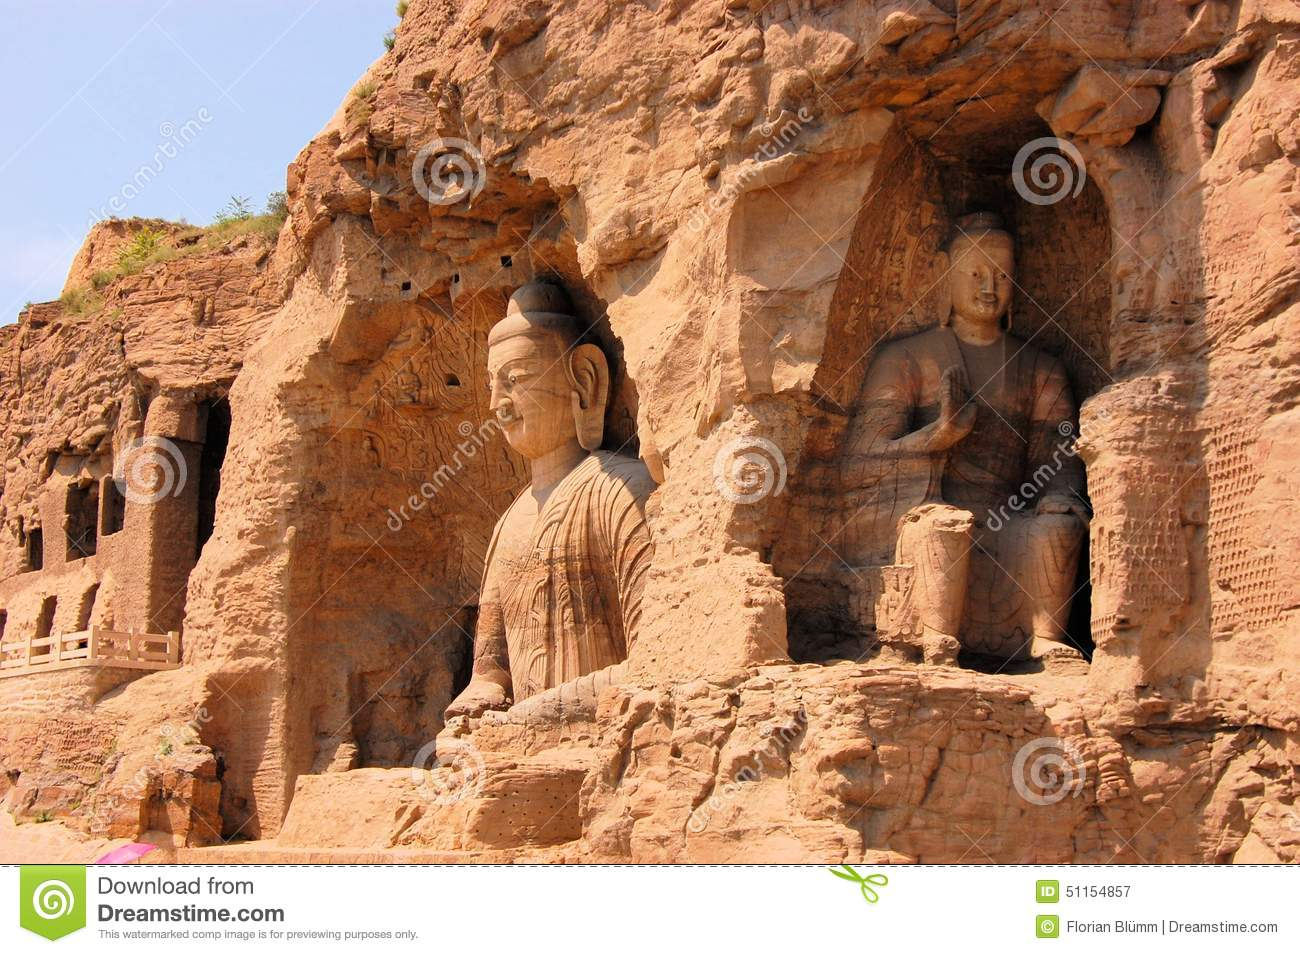 bryce canyon buddhist singles Join other like-minded singles on an incredible weekend escape to bryce canyon national park trip includes all planning, accommodations, and wilderness guides.